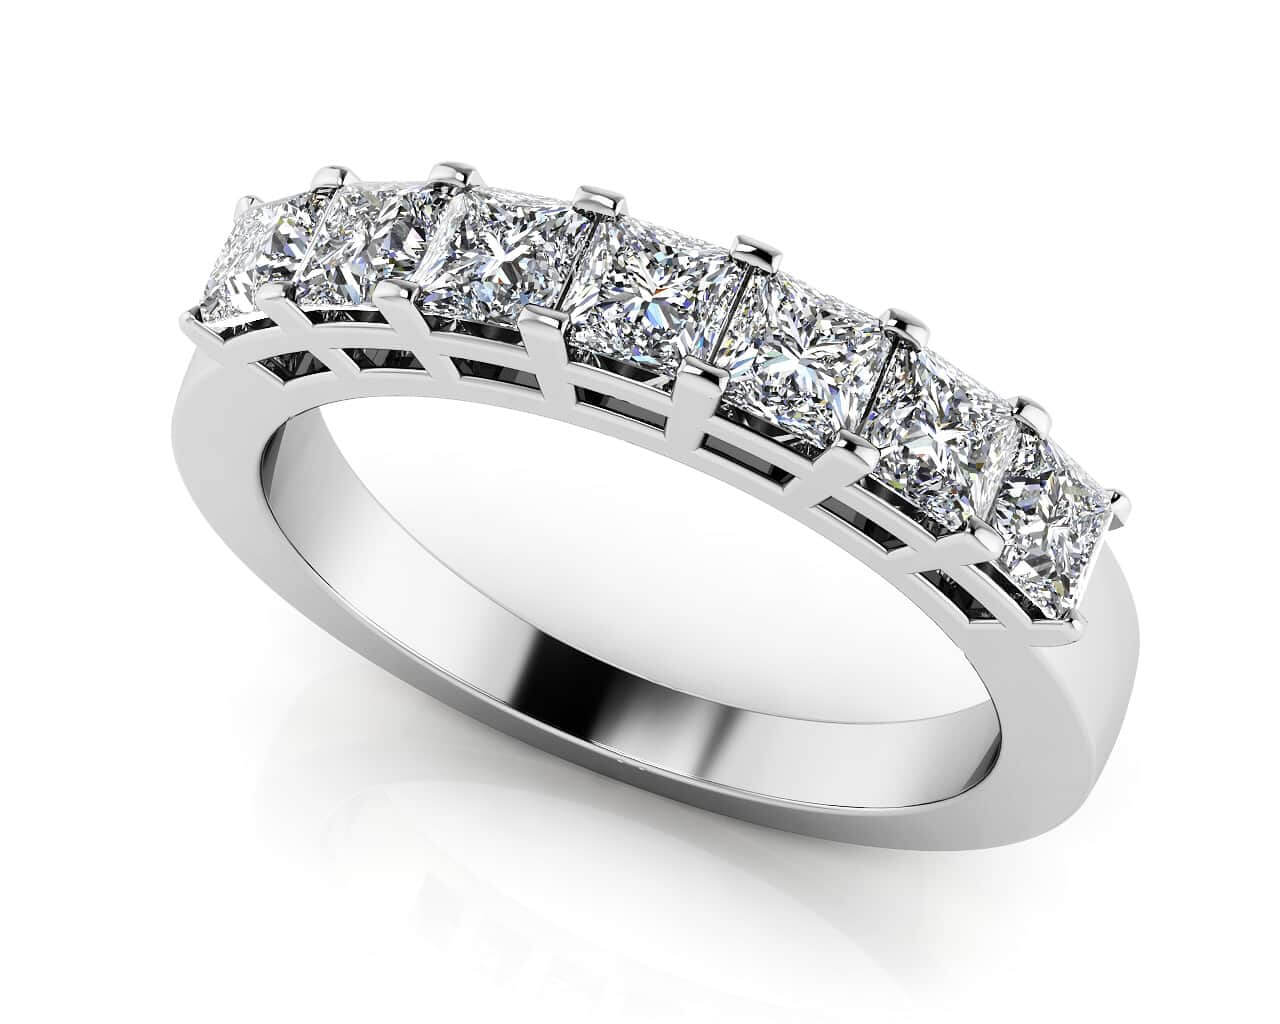 of jewellery ideas own fresh beautiful elegant design your concept ring pics wedding